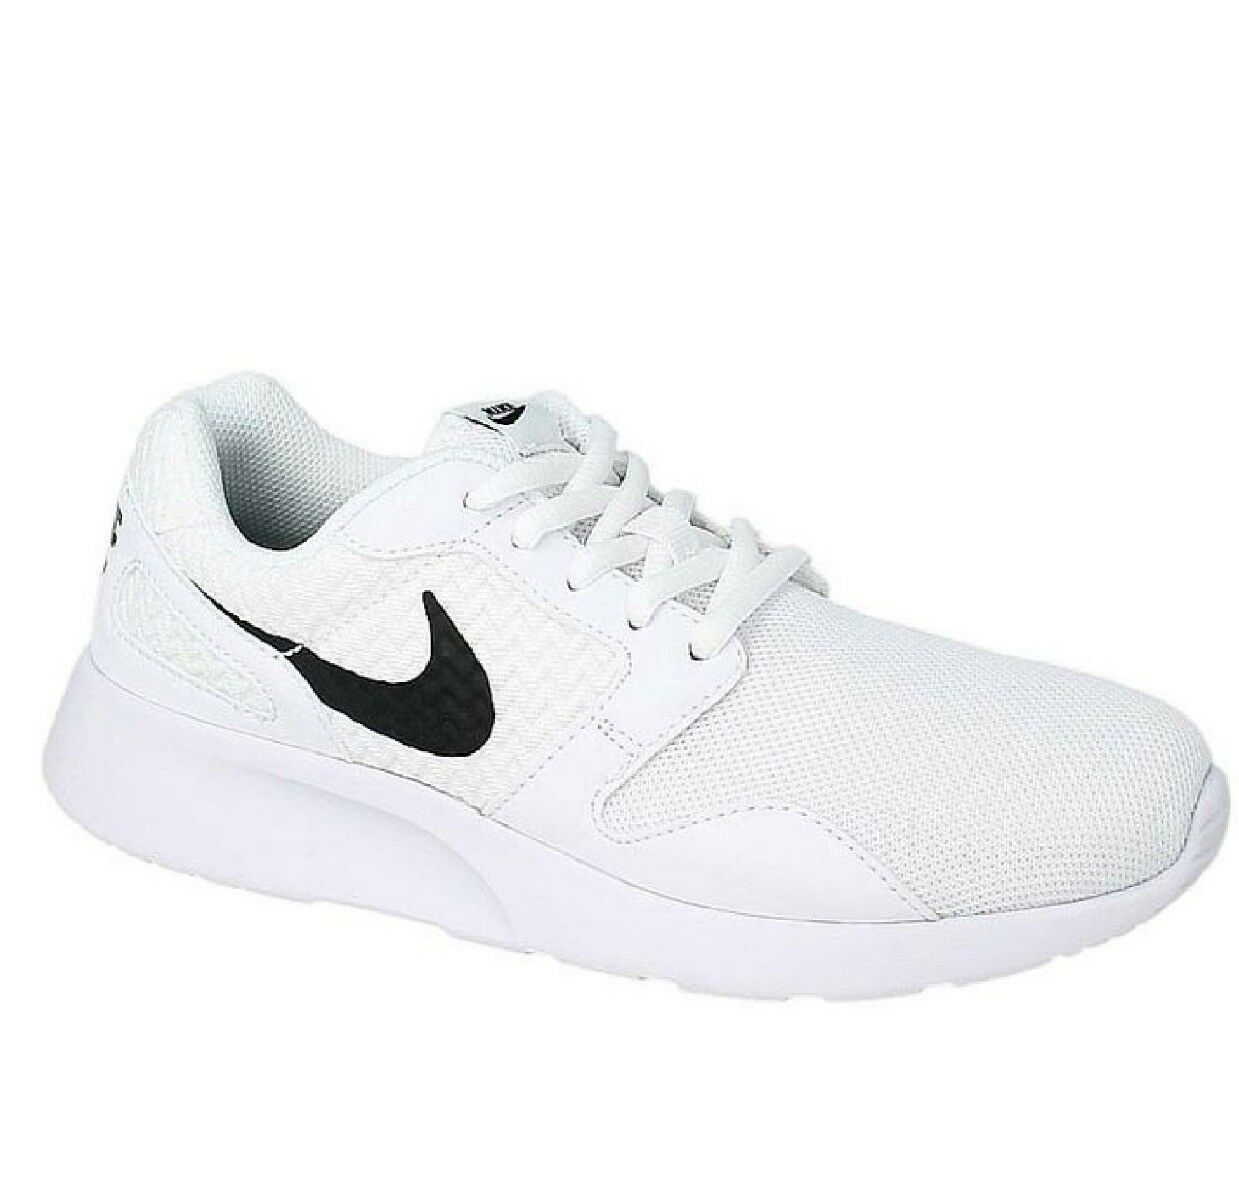 NIKE KAISHI WOMENS RUNNING TRAINER SHOES LADIES SIZE 4.5-6